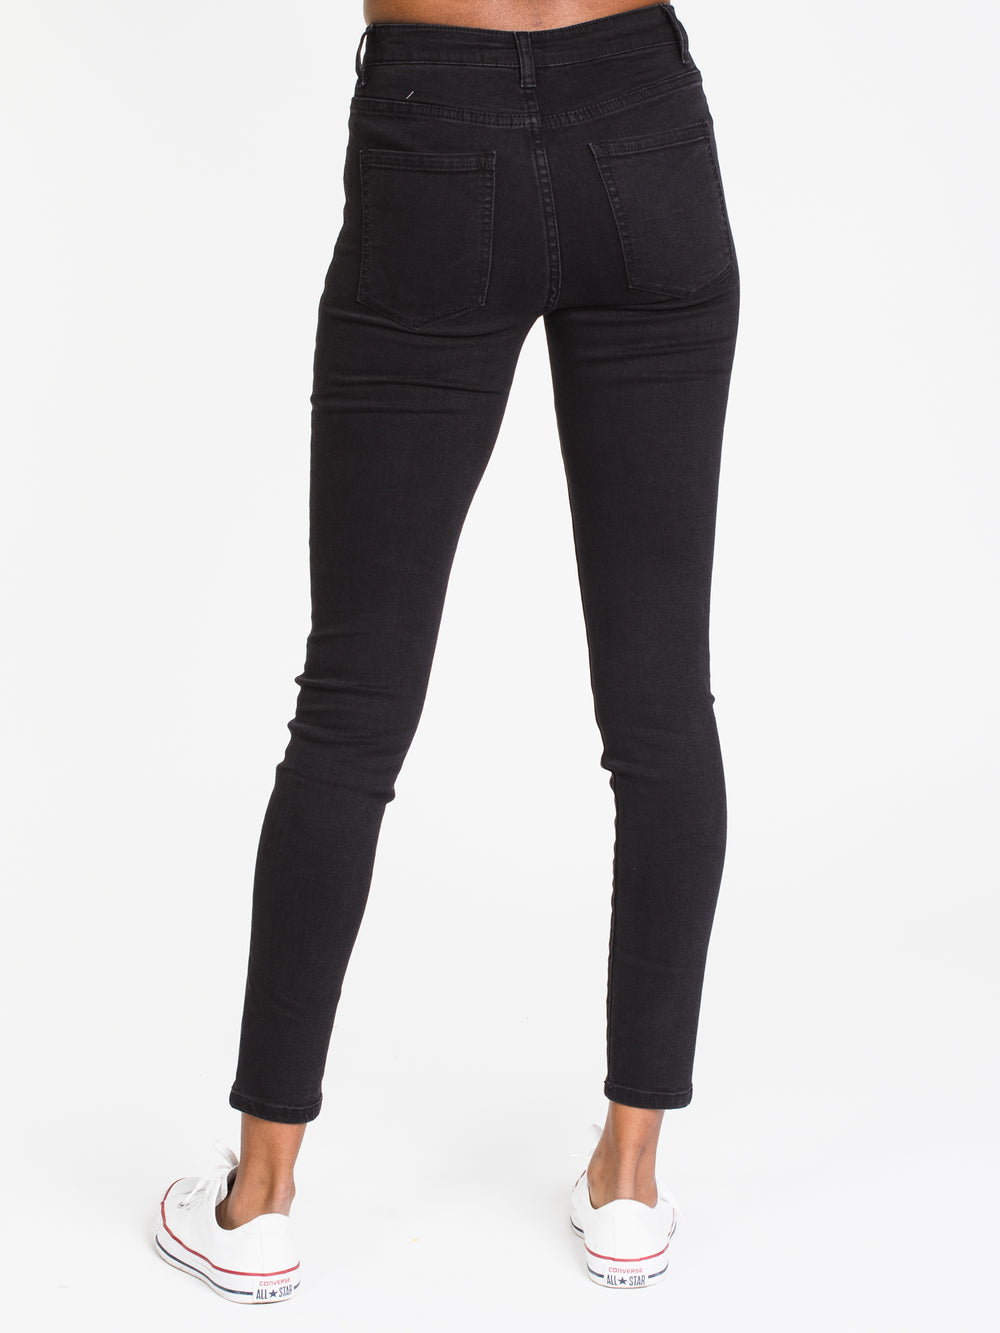 WOMENS HI-RISE SKINNY DENIM - BLACK